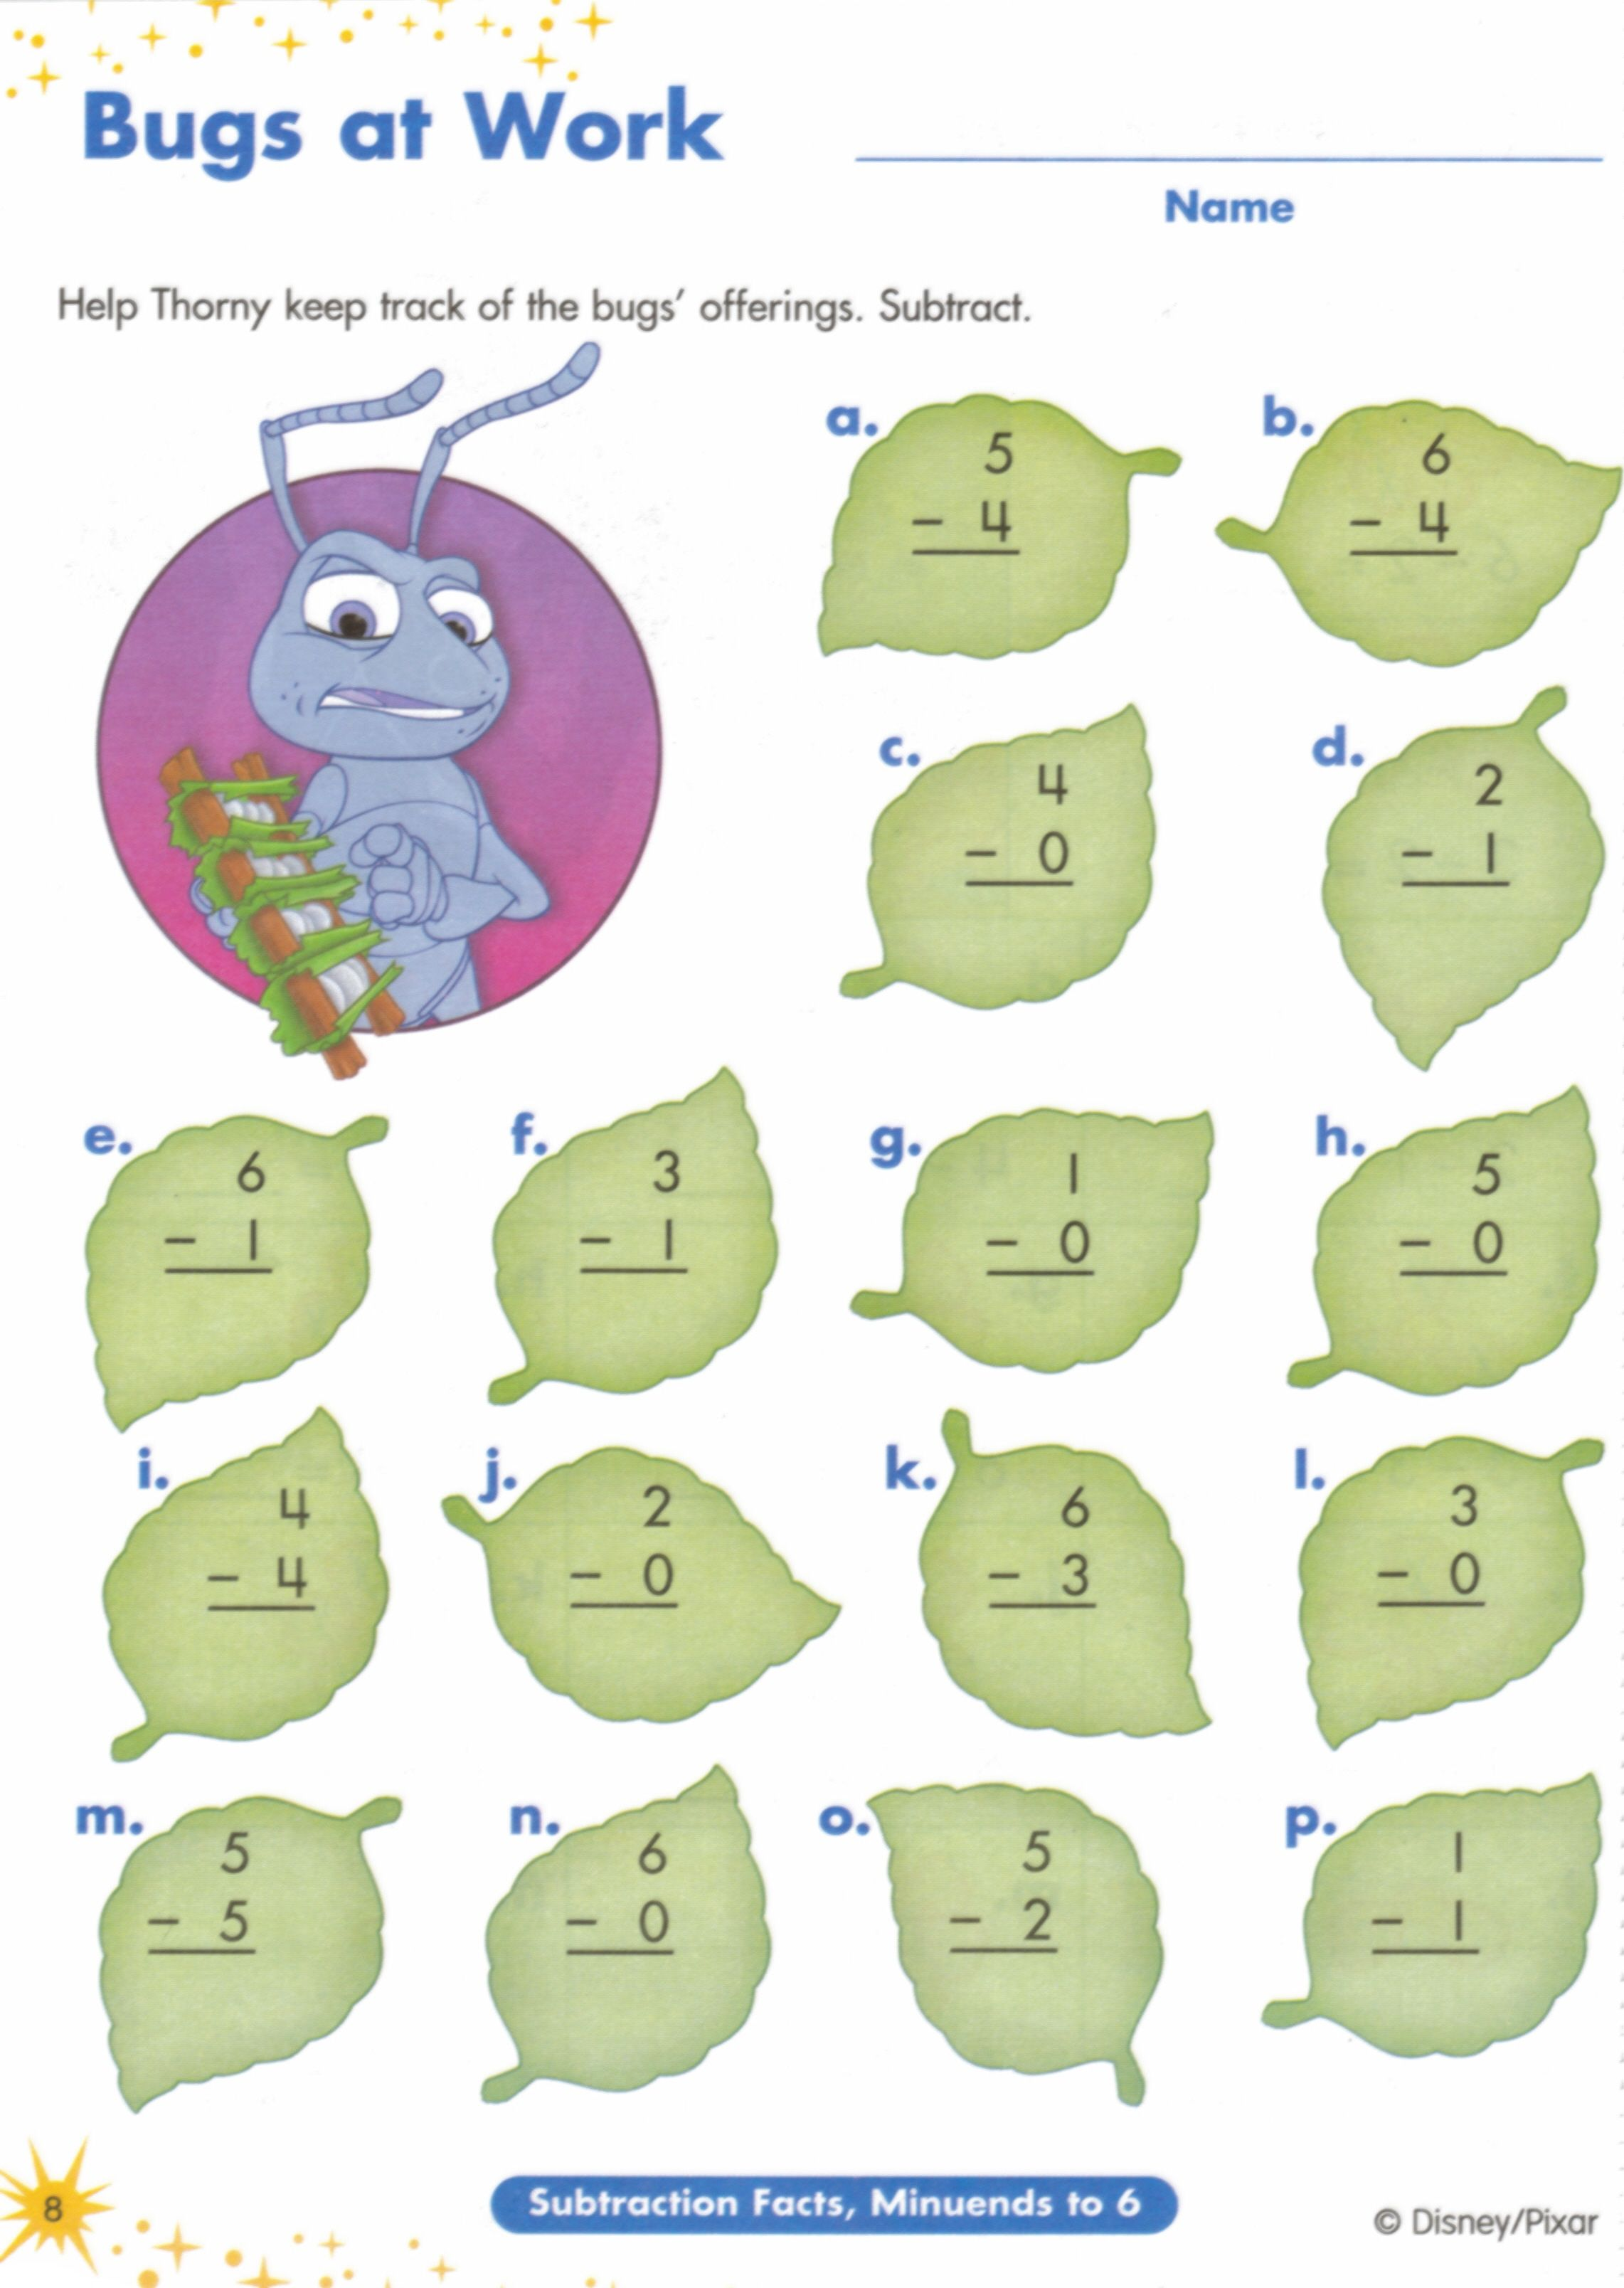 Proatmealus  Prepossessing  Images About Worksheets On Pinterest  Fun Facts For Kids  With Fair  Images About Worksheets On Pinterest  Fun Facts For Kids Earth Day Worksheets And Jungles With Beautiful Subtracting Fractions With Borrowing Worksheet Also Add And Subtract Worksheet In Addition Soft C And Soft G Worksheets And Daniel Boone Worksheets As Well As Free Printable Scientific Method Worksheets Additionally Free Printable Multiplication And Division Worksheets From Pinterestcom With Proatmealus  Fair  Images About Worksheets On Pinterest  Fun Facts For Kids  With Beautiful  Images About Worksheets On Pinterest  Fun Facts For Kids Earth Day Worksheets And Jungles And Prepossessing Subtracting Fractions With Borrowing Worksheet Also Add And Subtract Worksheet In Addition Soft C And Soft G Worksheets From Pinterestcom